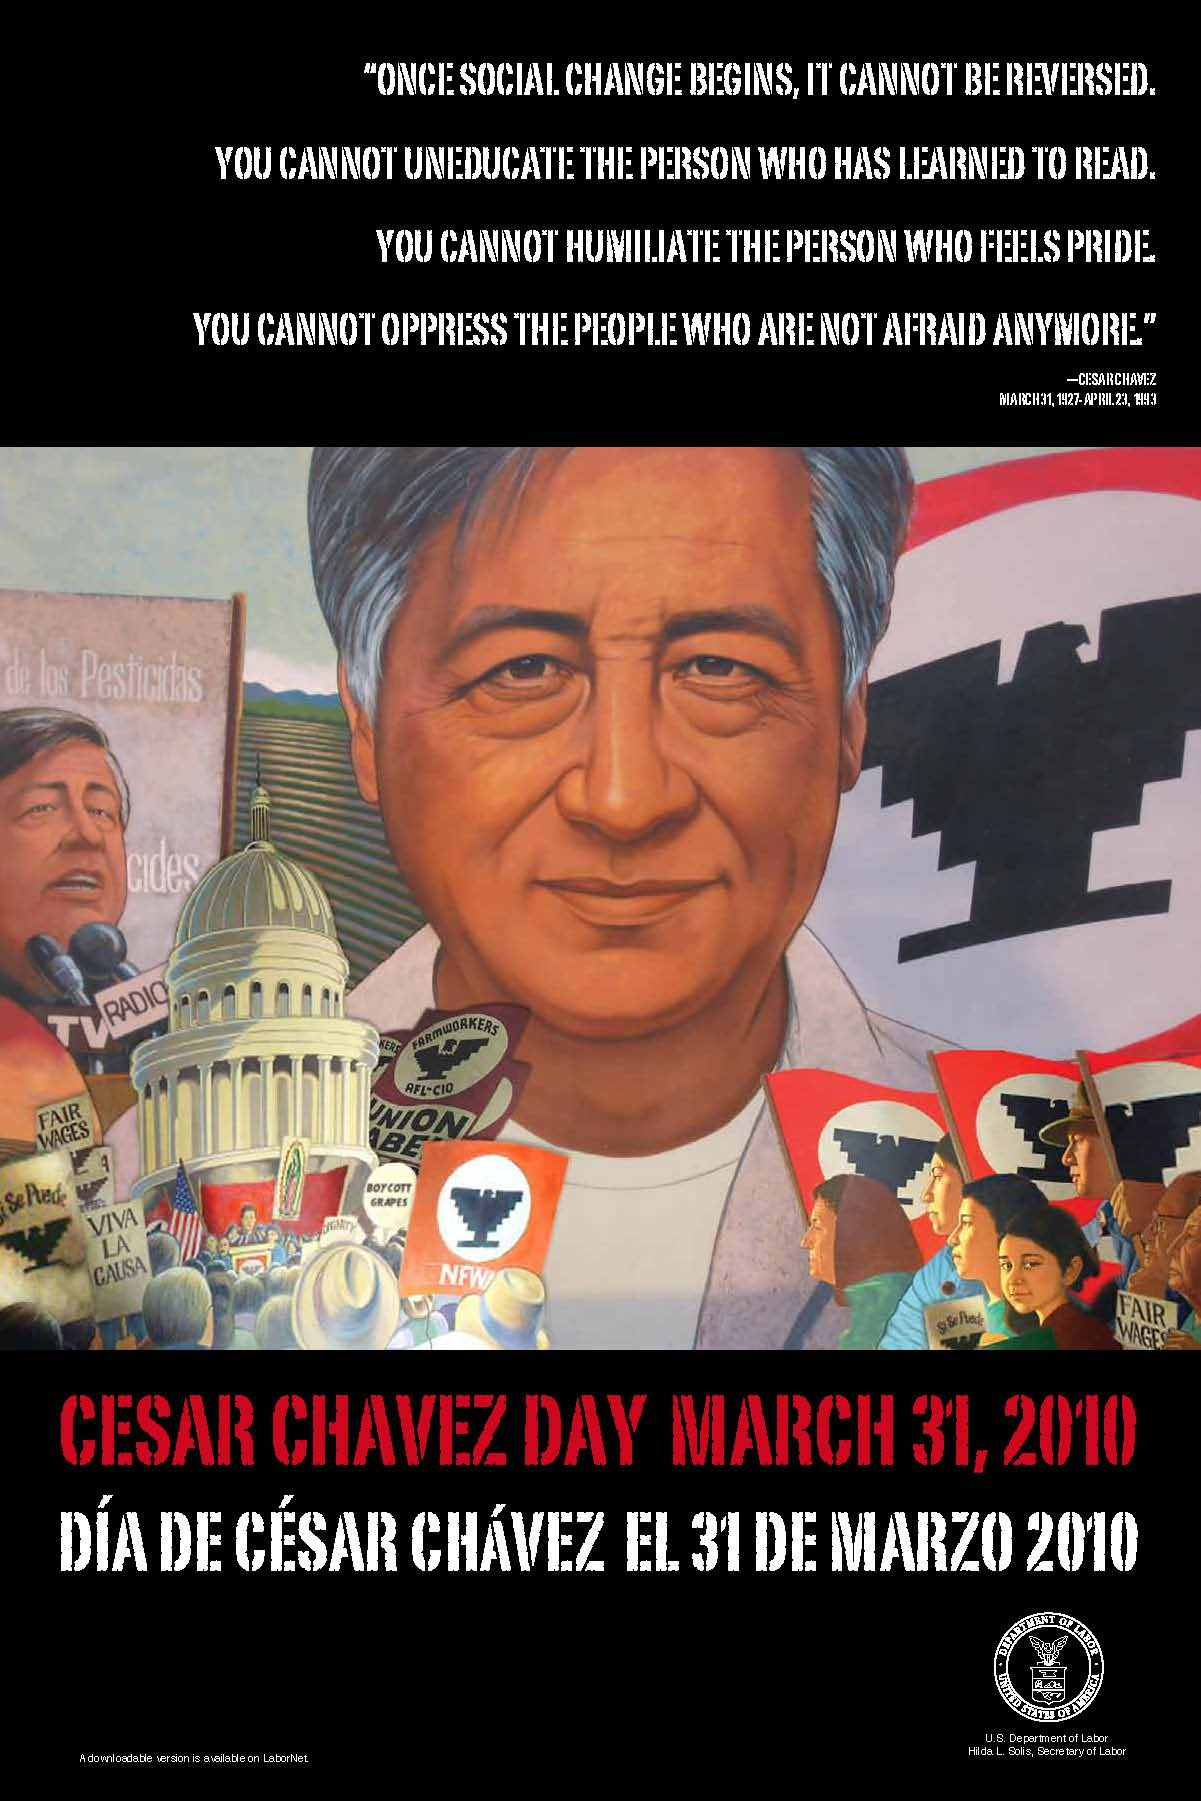 https://upload.wikimedia.org/wikipedia/commons/8/8d/Cesar_Chavez_Day.jpg